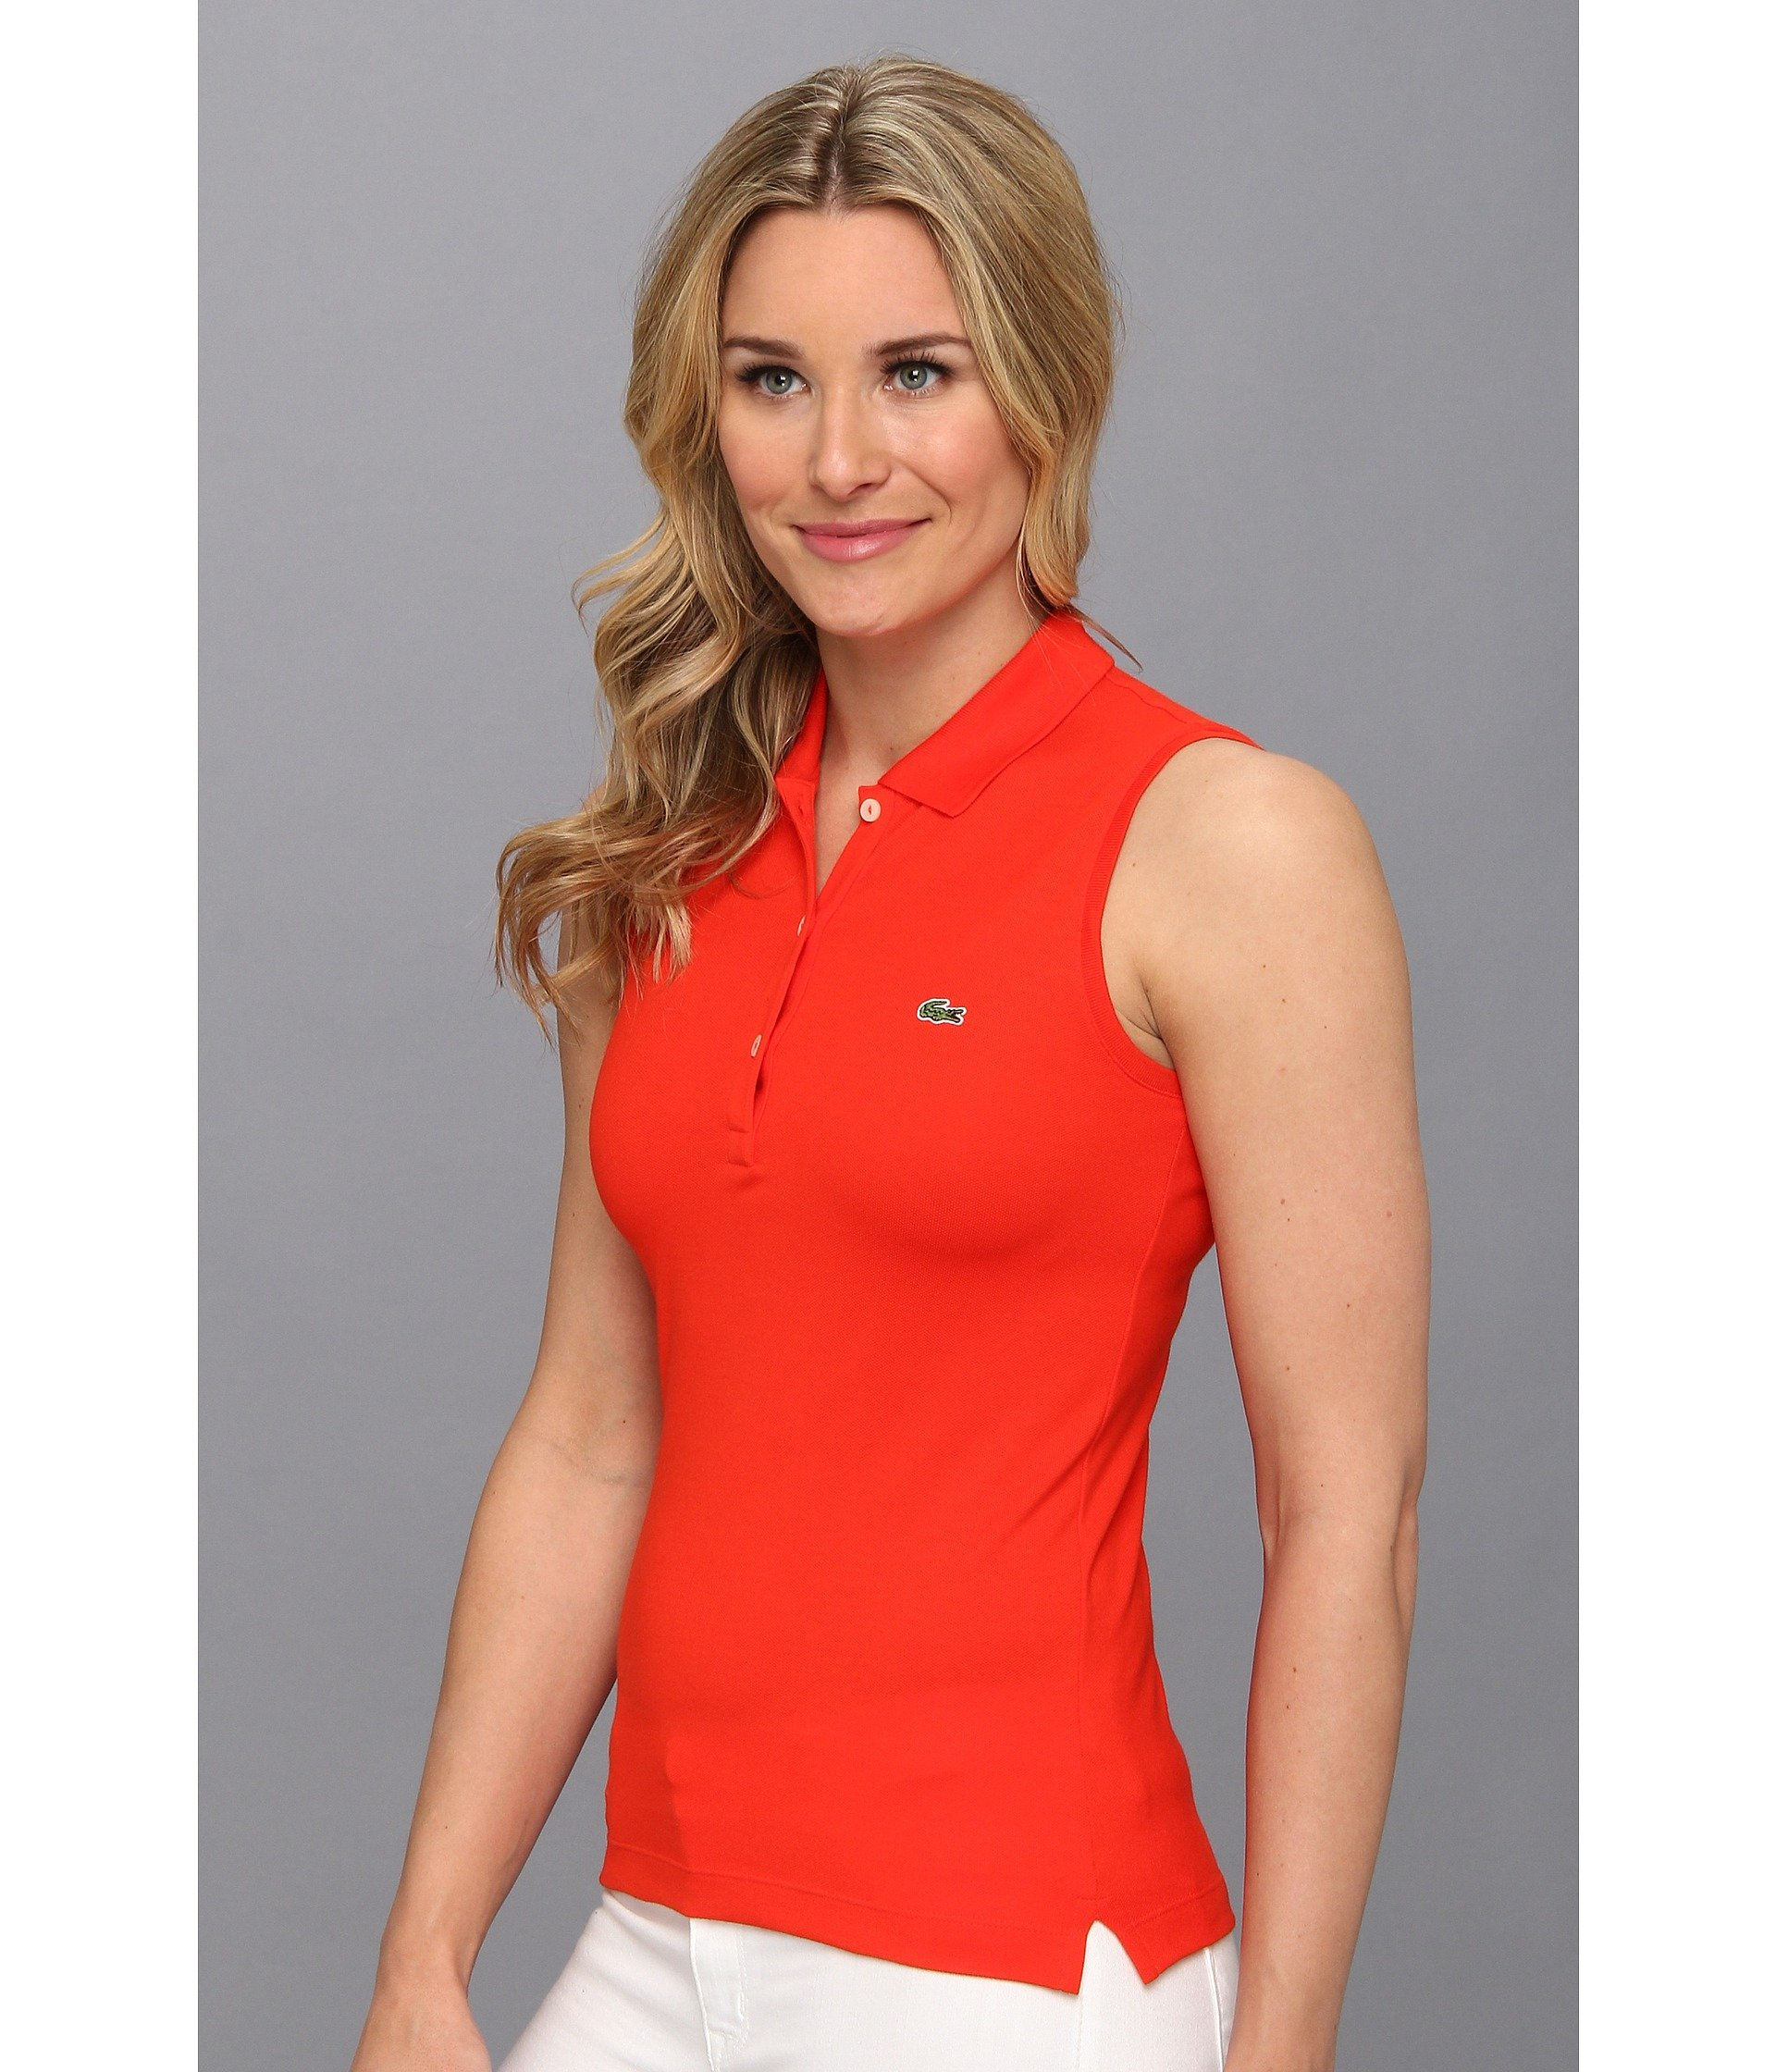 d3be781c43 Lacoste Sleeveless Stretch Pique Polo in Red - Lyst